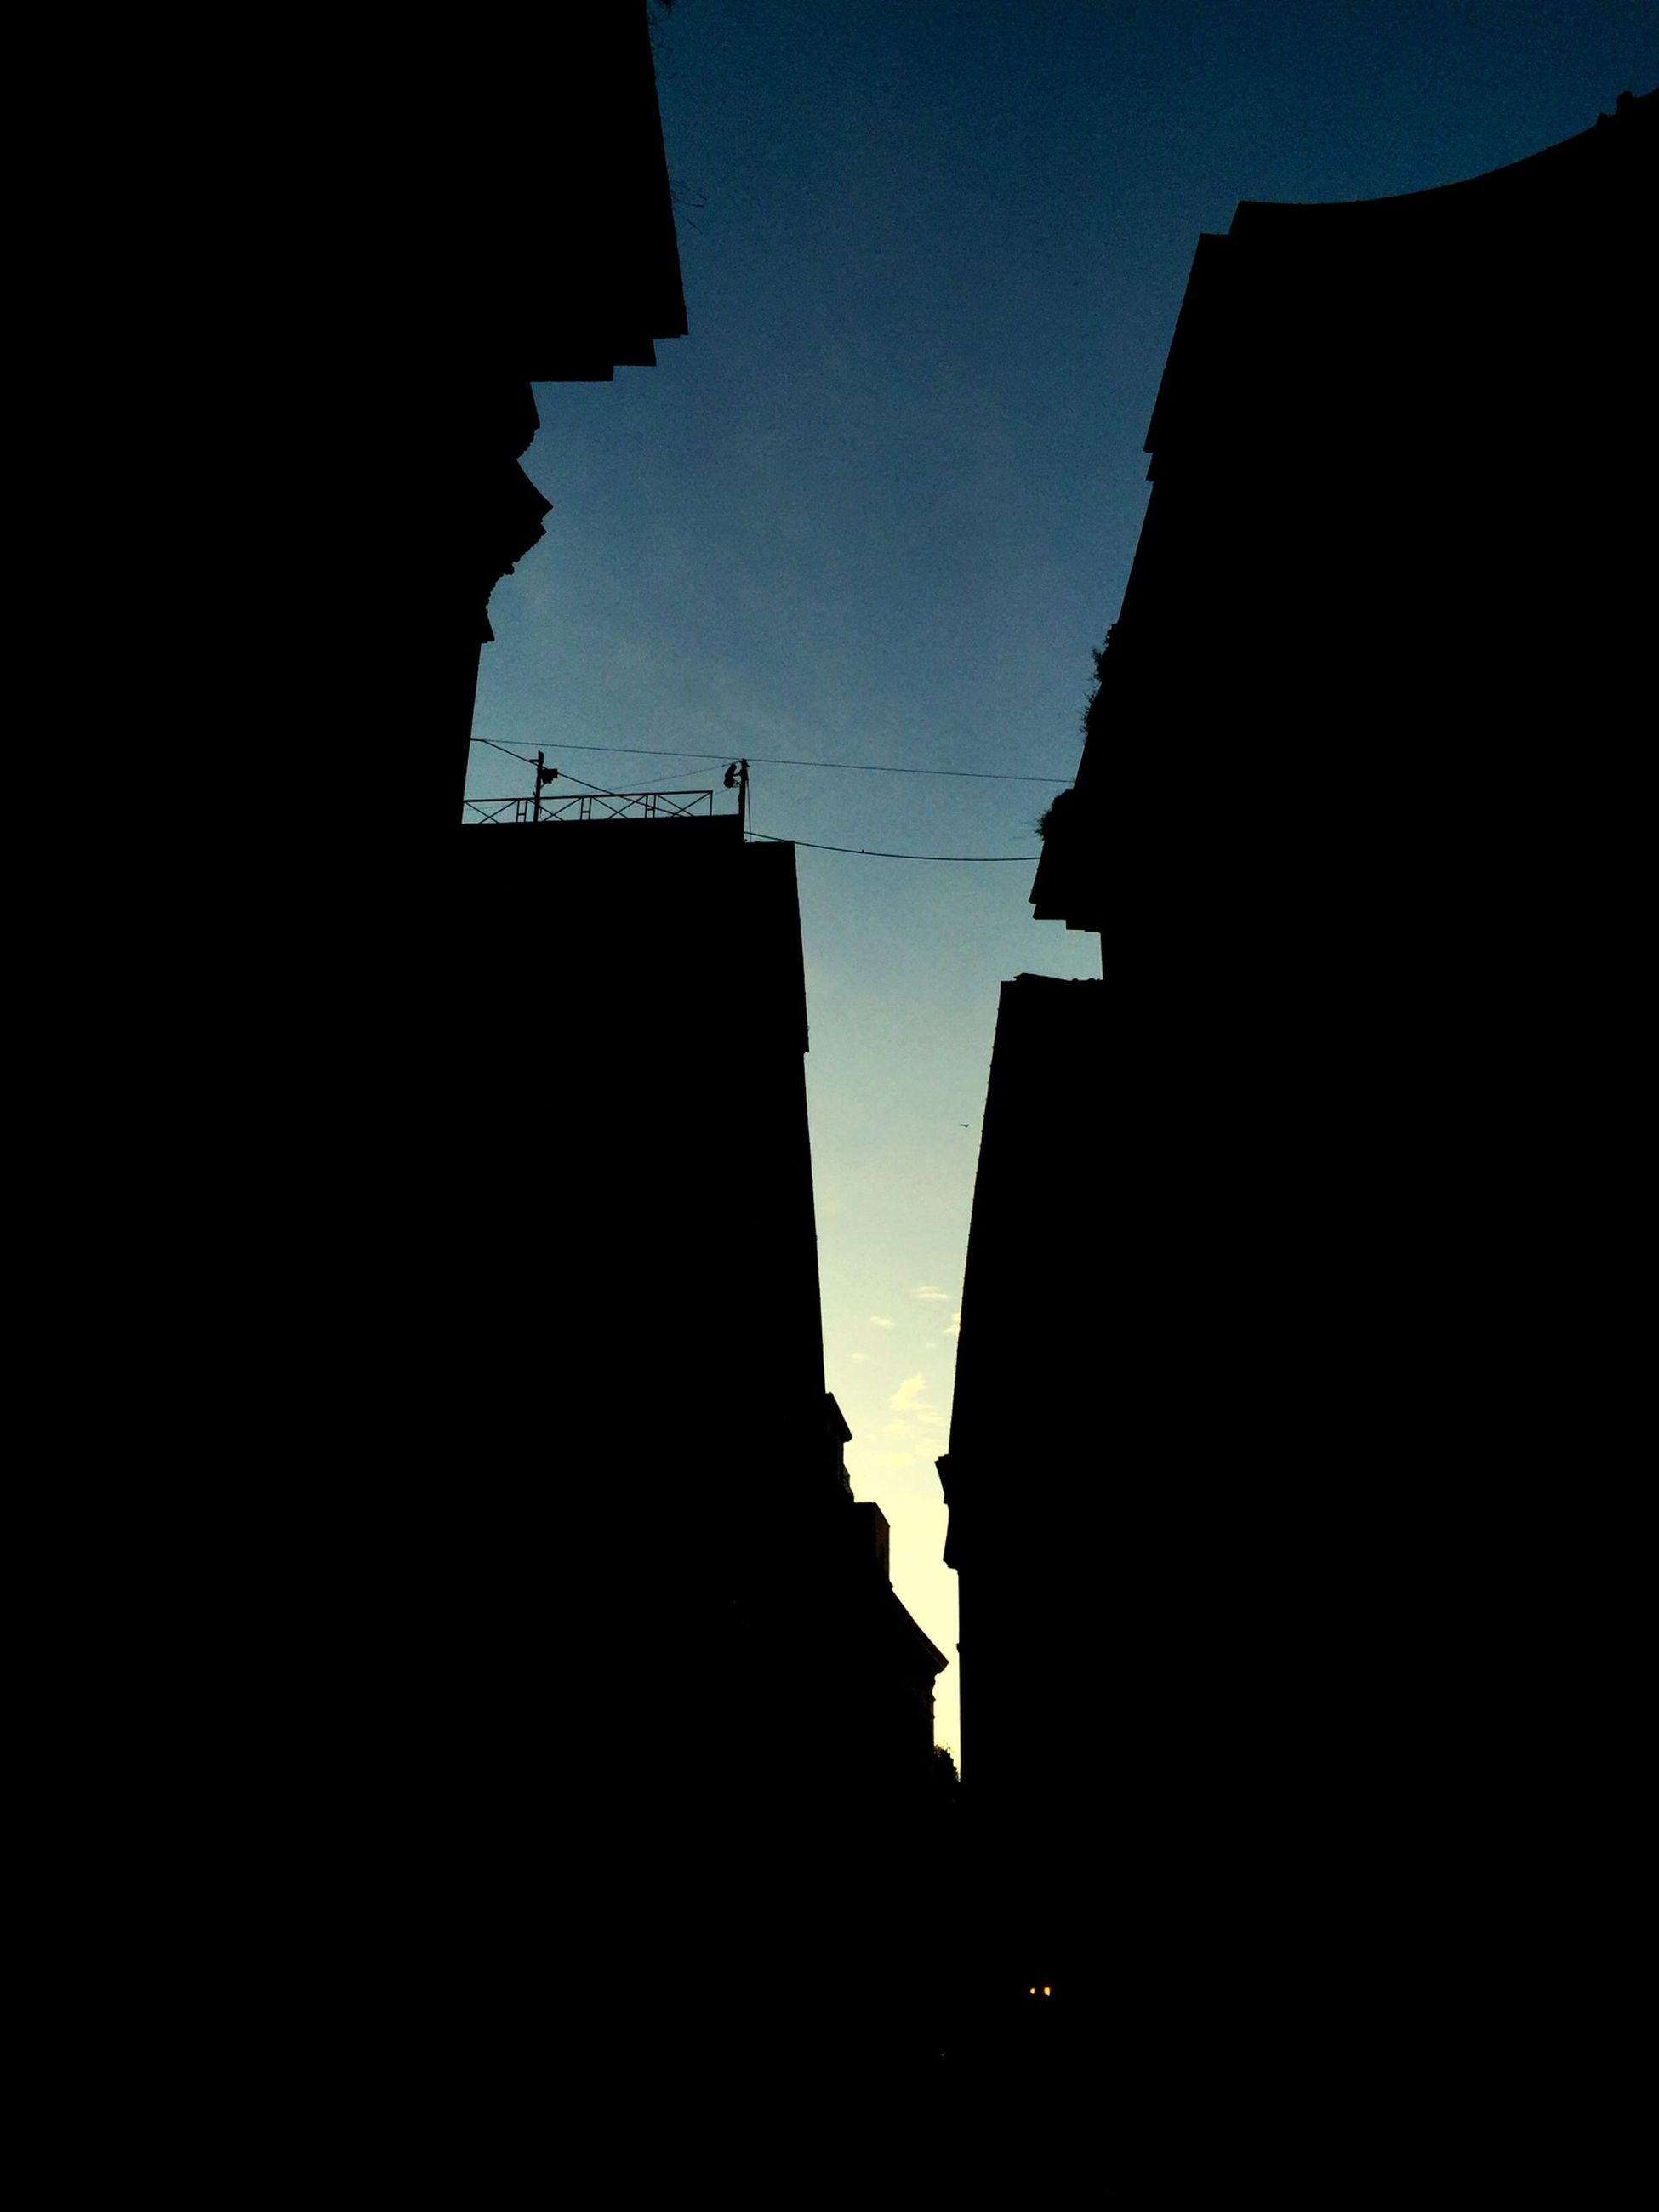 building exterior, architecture, built structure, silhouette, low angle view, sky, building, city, dusk, clear sky, tower, history, outline, outdoors, copy space, no people, residential building, travel destinations, residential structure, dark